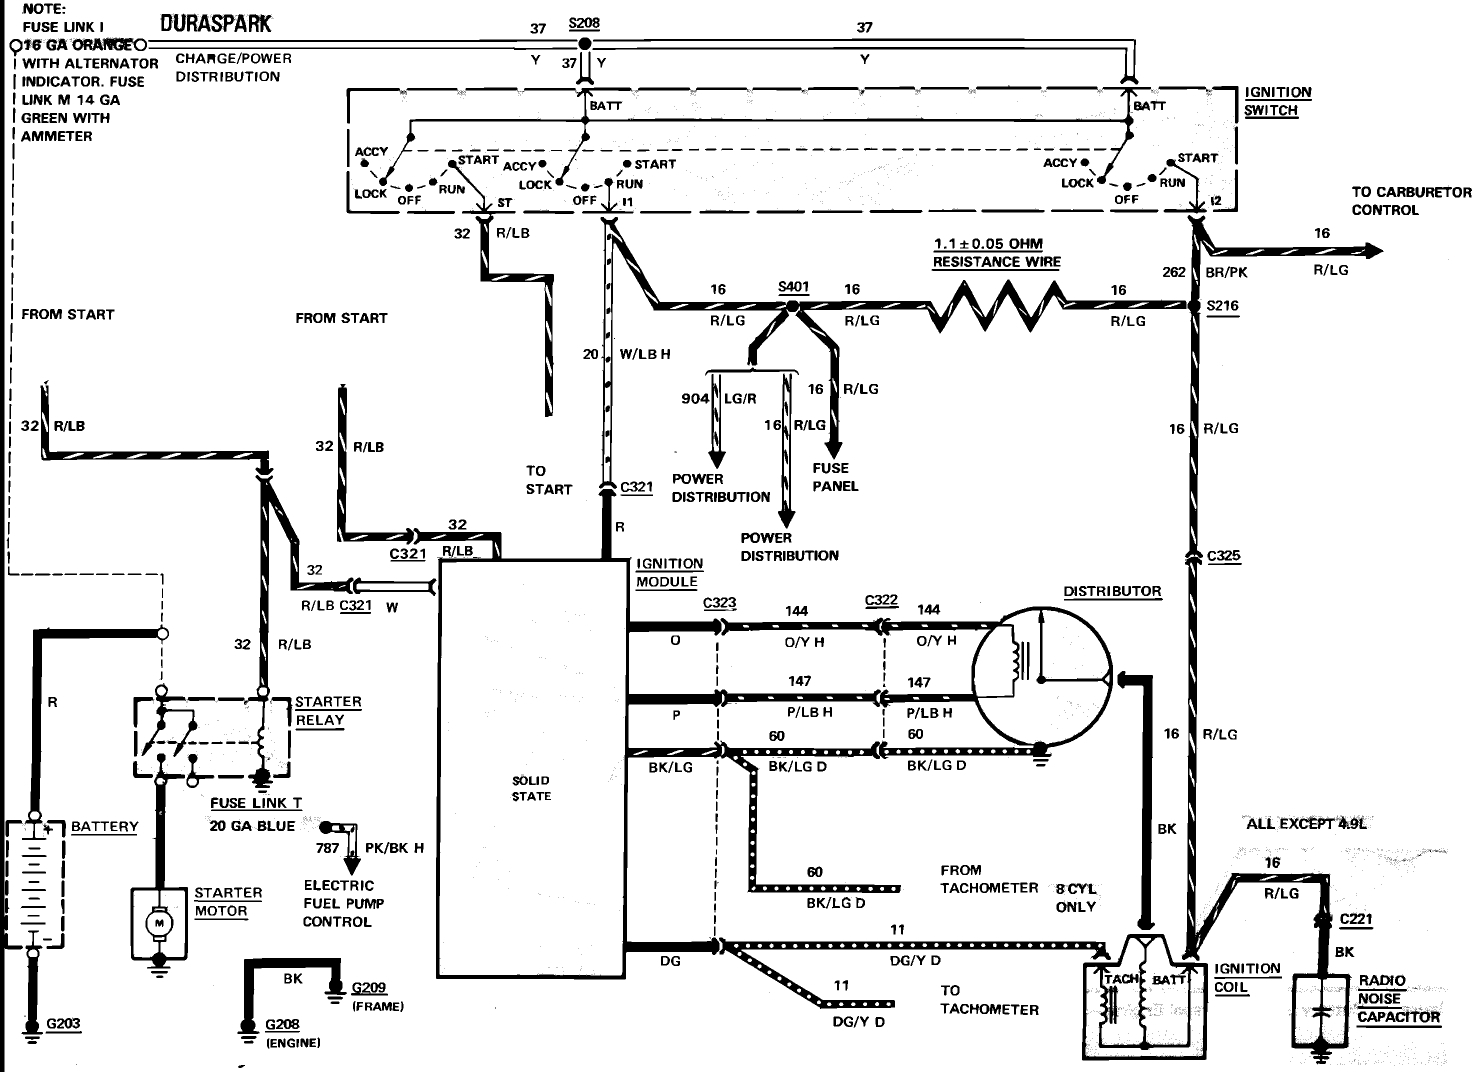 2004 Ford 4 0l Distributor Wiring - Blog Wiring Diagrams Nighthawk Wiring Diagram on